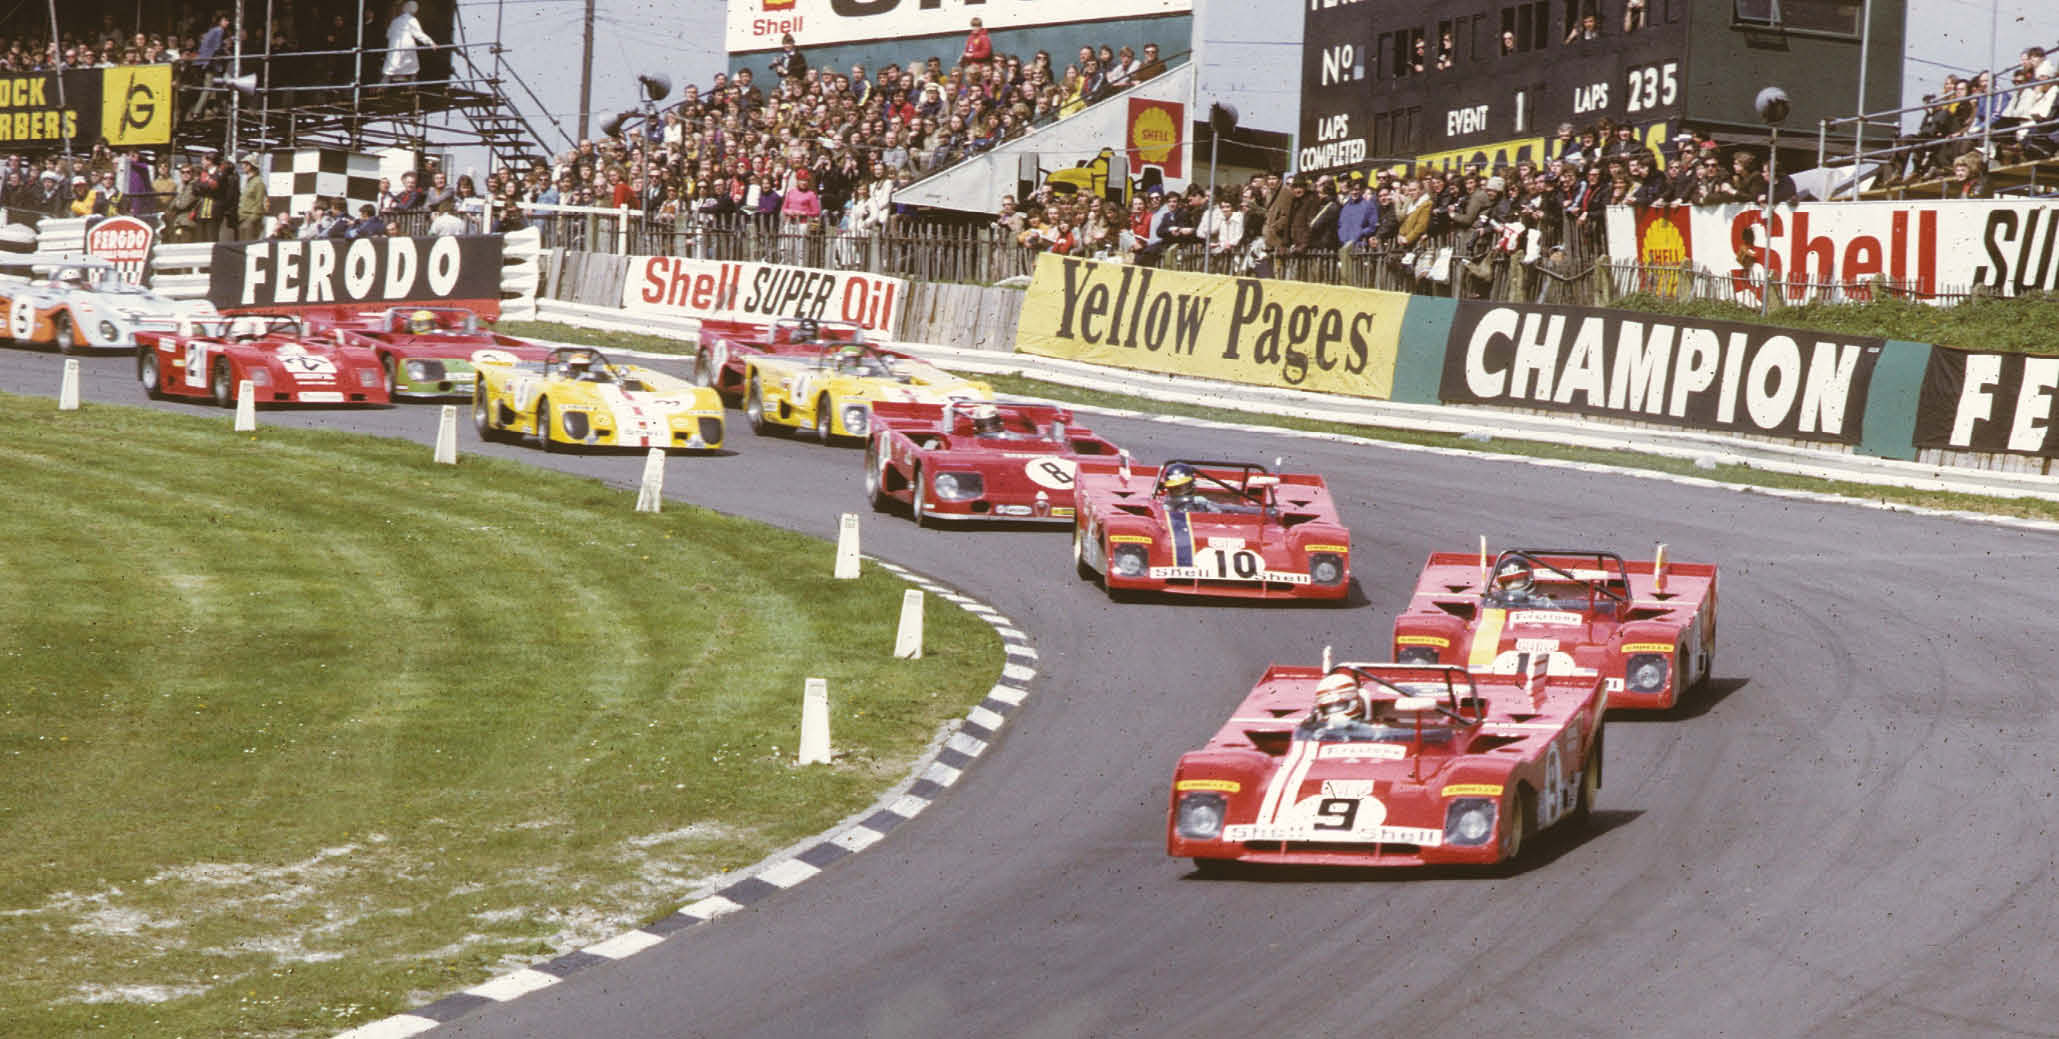 Clay Regazzoni leads the pack through Paddock Hill Bend in the Ferrari 312 PB he shared with Brian Redman. They would end up fifth overall after late engine trouble struck